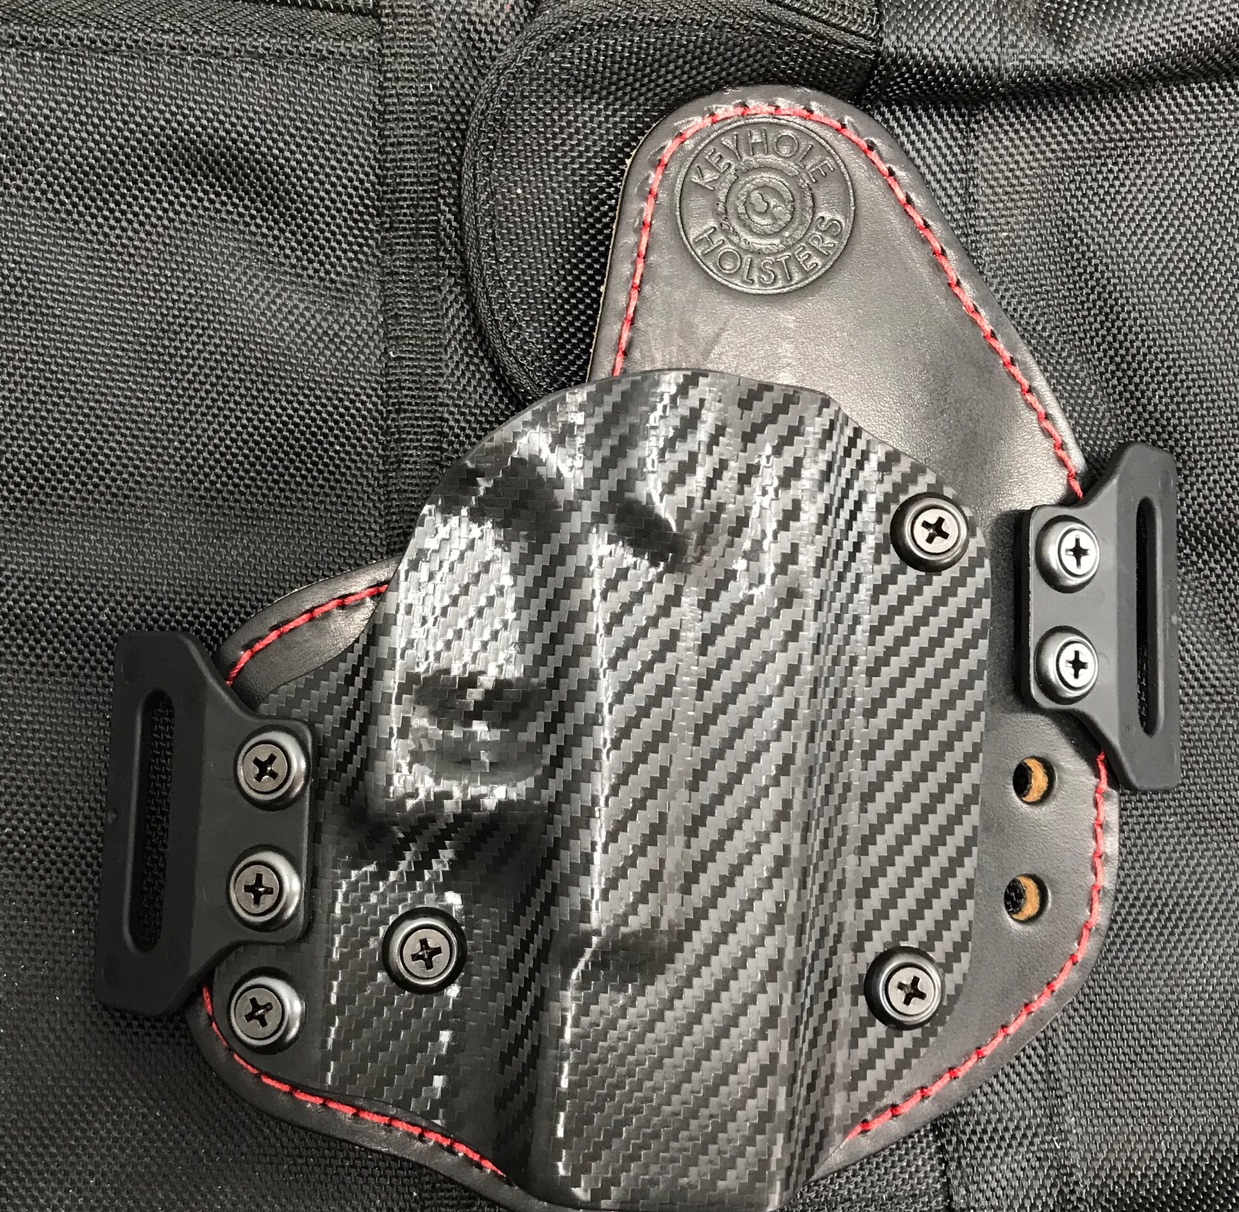 Recon OWB holster